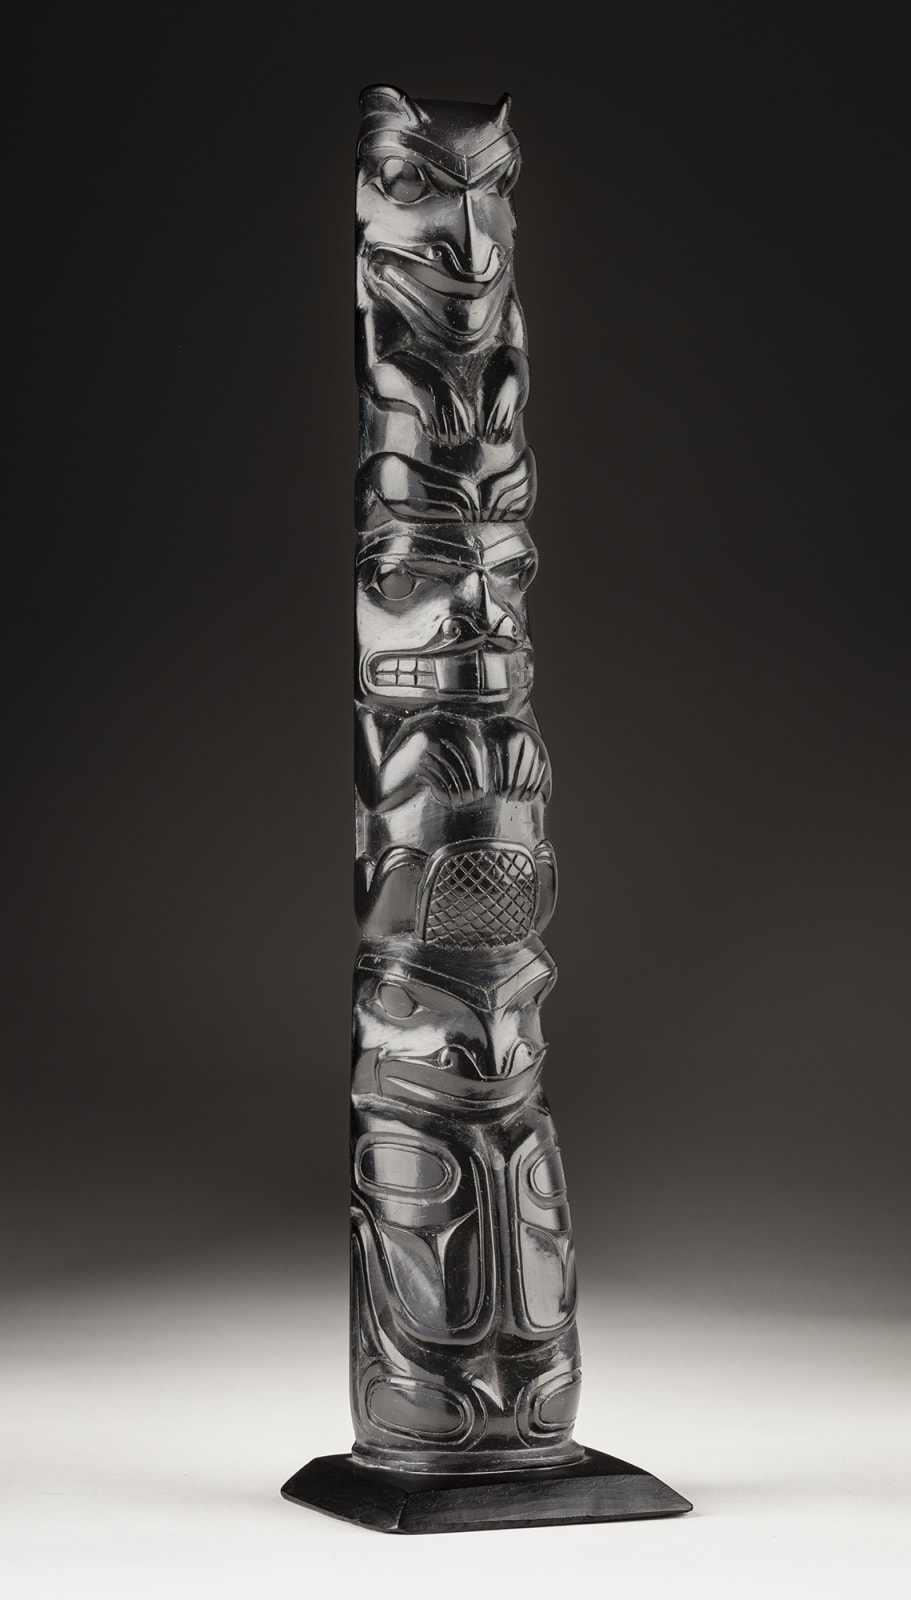 Lot 55 UNIDENTIFIED ARTIST, HAIDA, PROBABLY MASSET, HAIDA GWAII Totem Pole, c. 1900-1910 argillite, 9.5 x 2.5 x 2 in (24.1 x 6.3 x 5.1 cm) Estimate: $1,800⁠ — $2,800 Price realized: $4,560